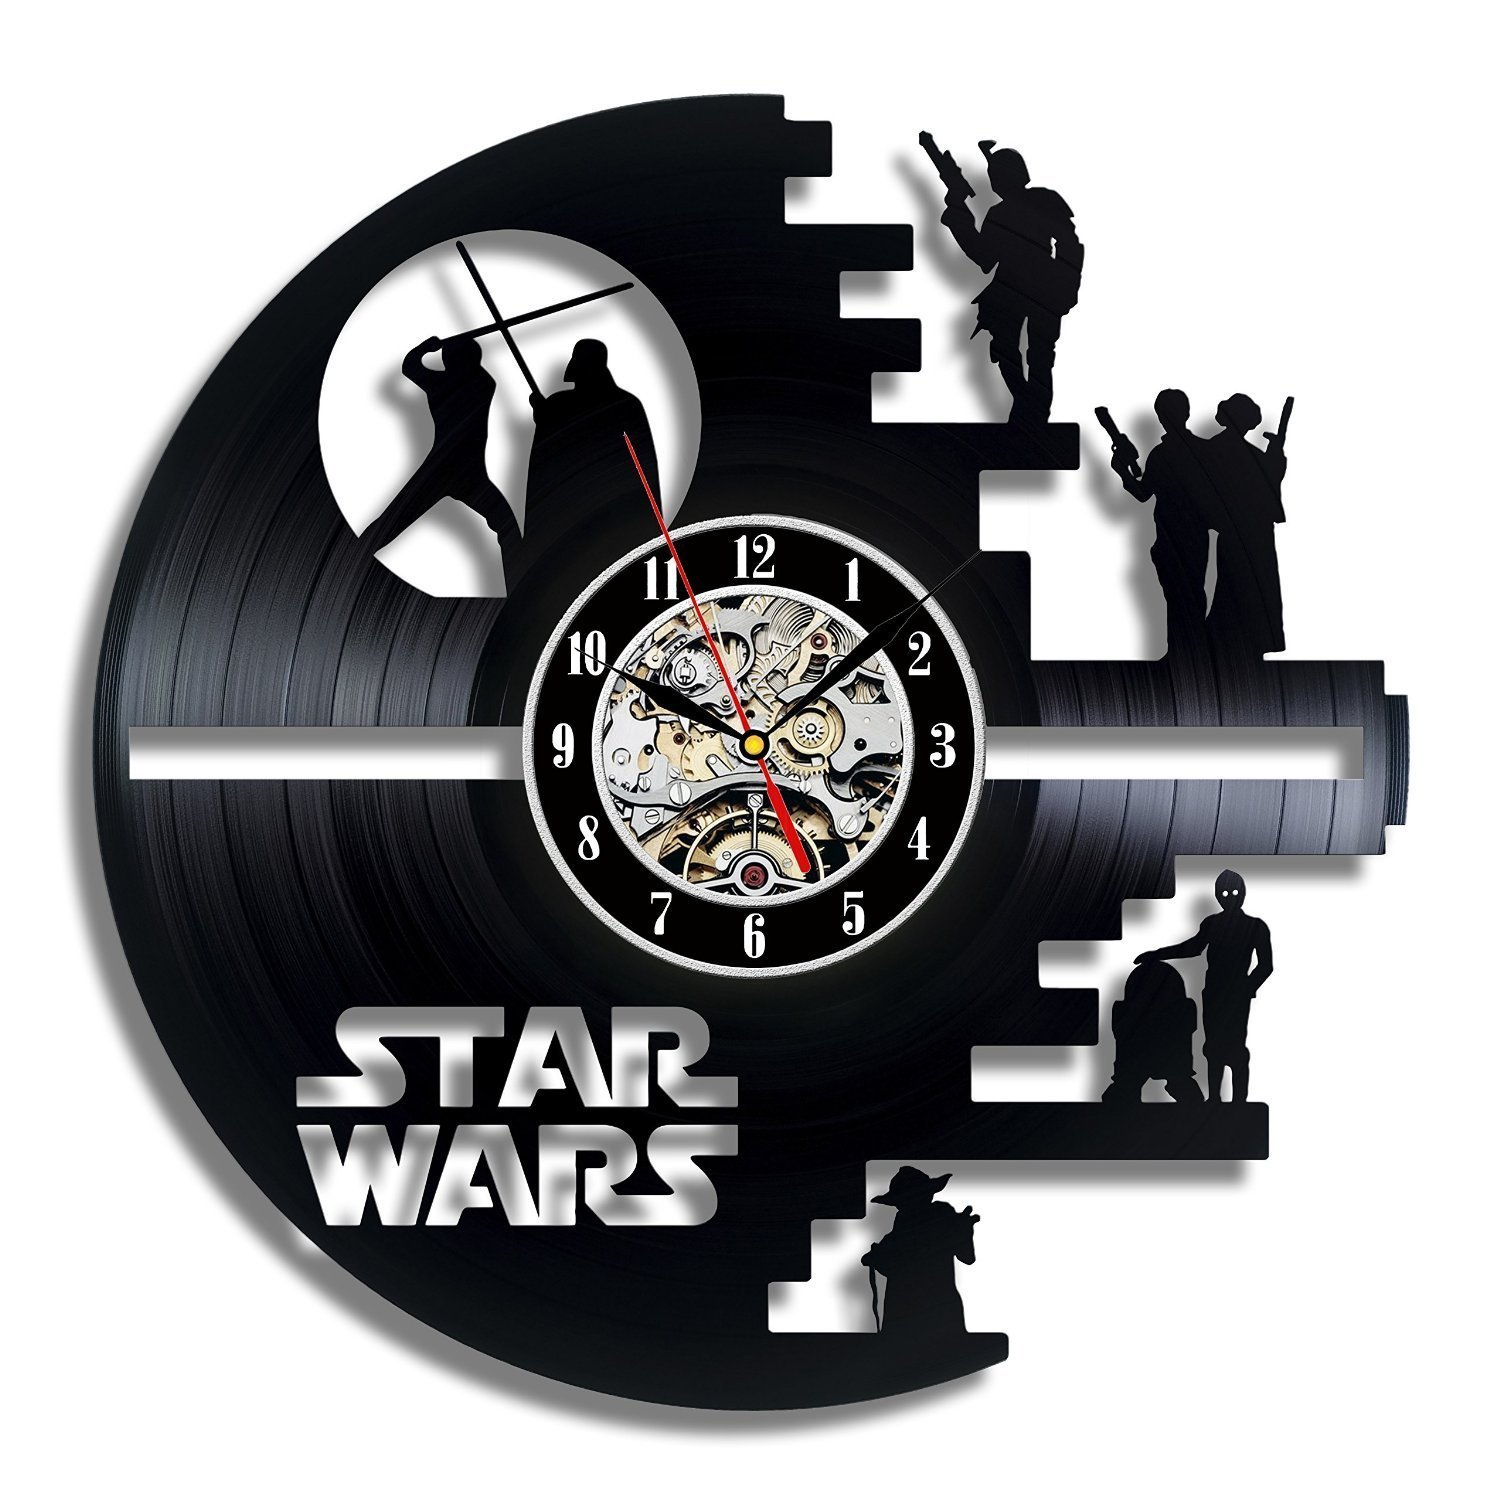 Amazon star wars death star designed wall clock decorate amazon star wars death star designed wall clock decorate your home with modern large darth vader and luke skywalker art best gift for friend amipublicfo Gallery